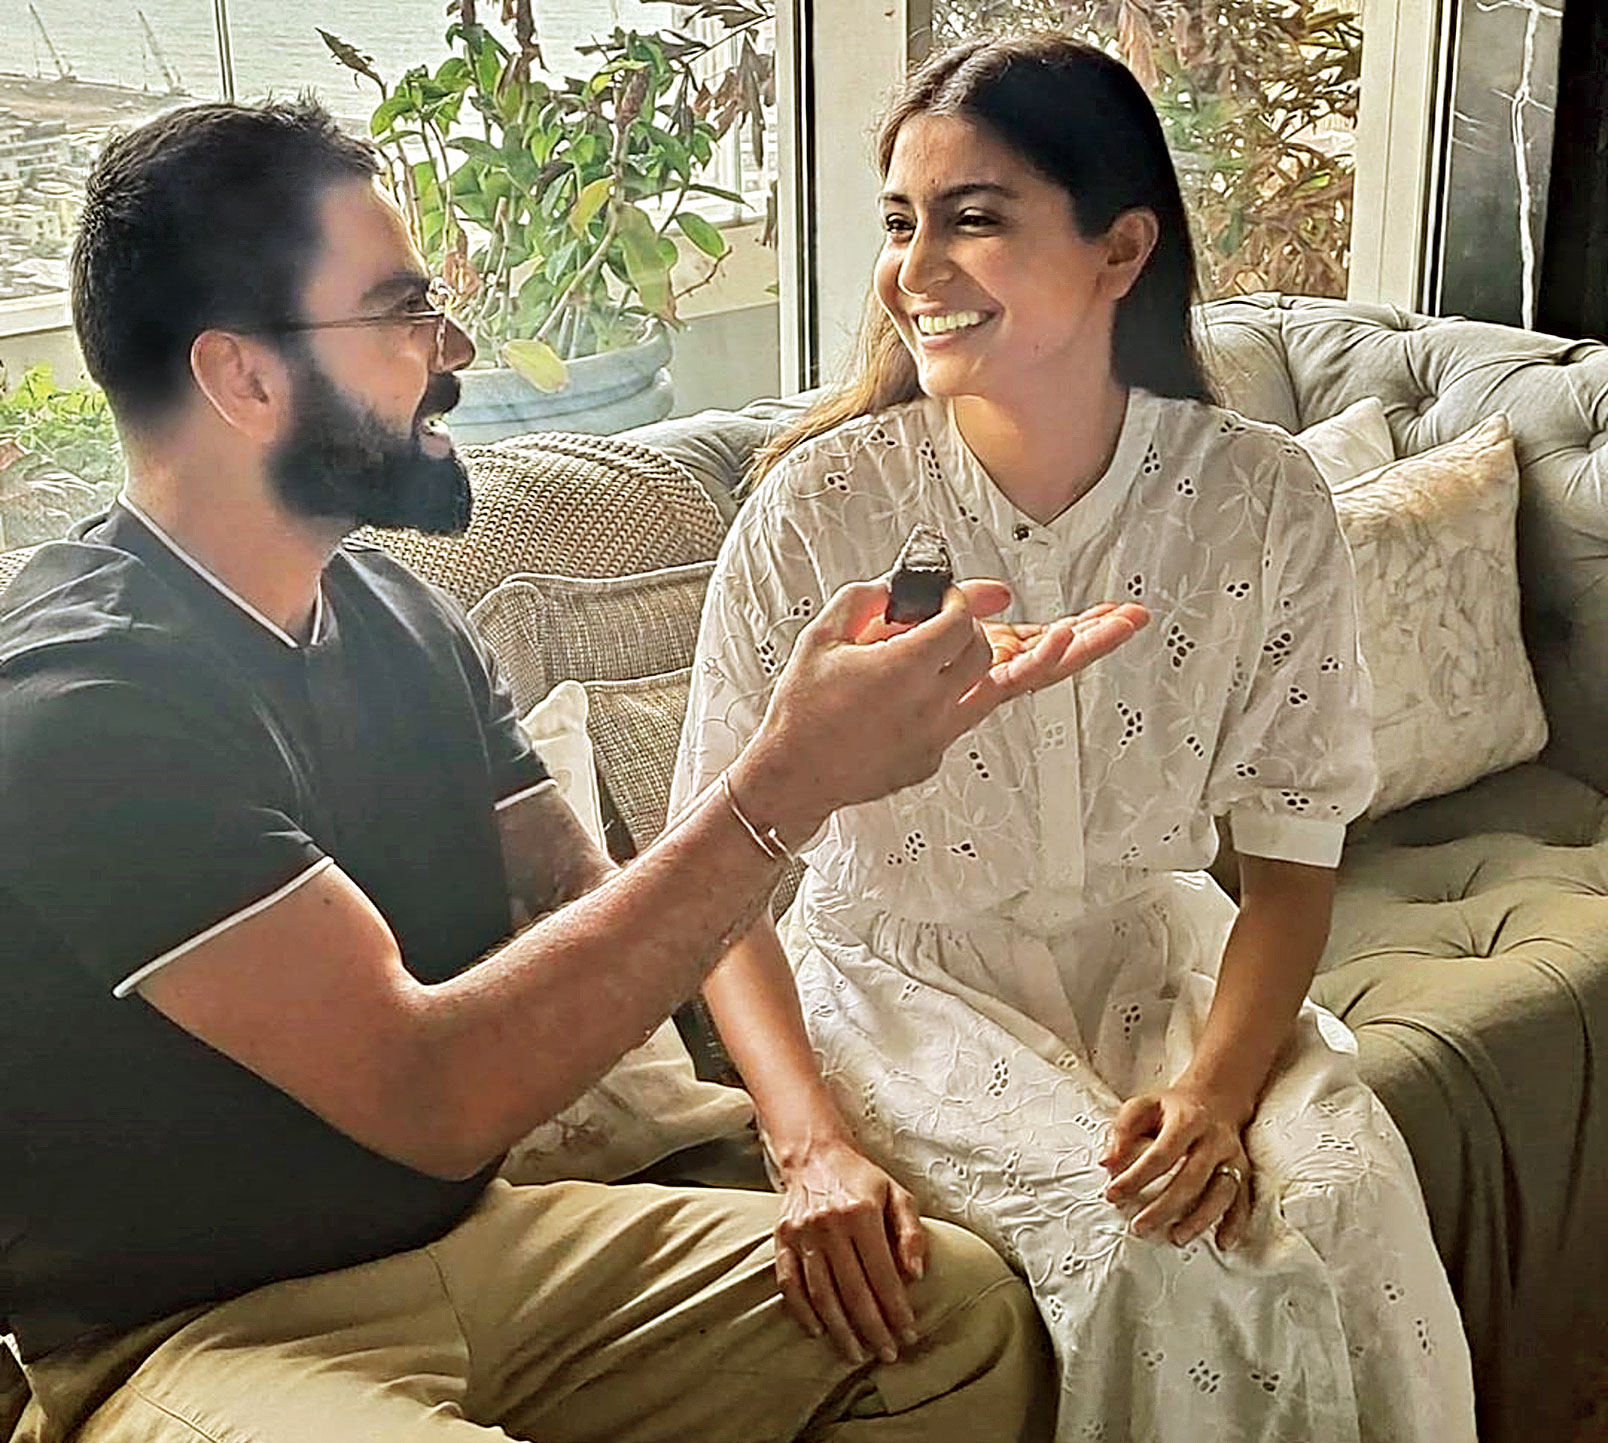 """India skipper Virat Kohli celebrates wife Anushka Sharma's birthday at home on Friday. Sharing a picture on Twitter and Instagram, offering his actress-wife a piece of birthday cake, Virat wrote: """"You my love bring light into this world. And you light up my world everyday. I love you."""""""